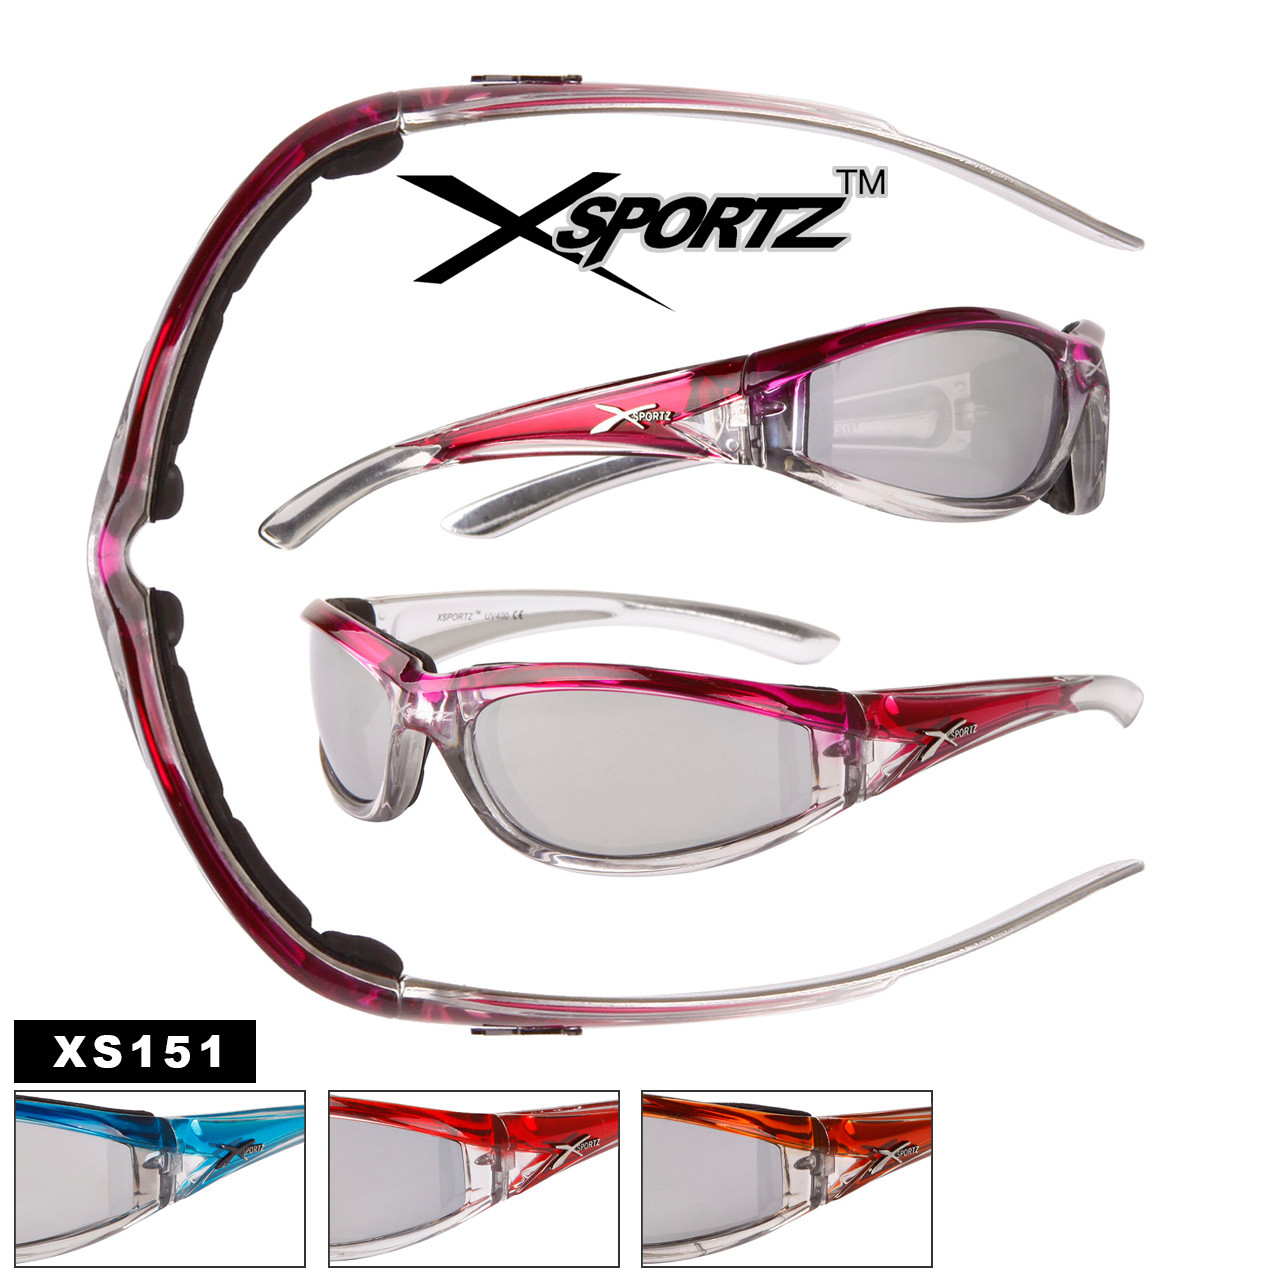 1d0104ae37d Xsportz™ Wholesale Motorcycle Sunglasses - Style  XS151 Foam Padded